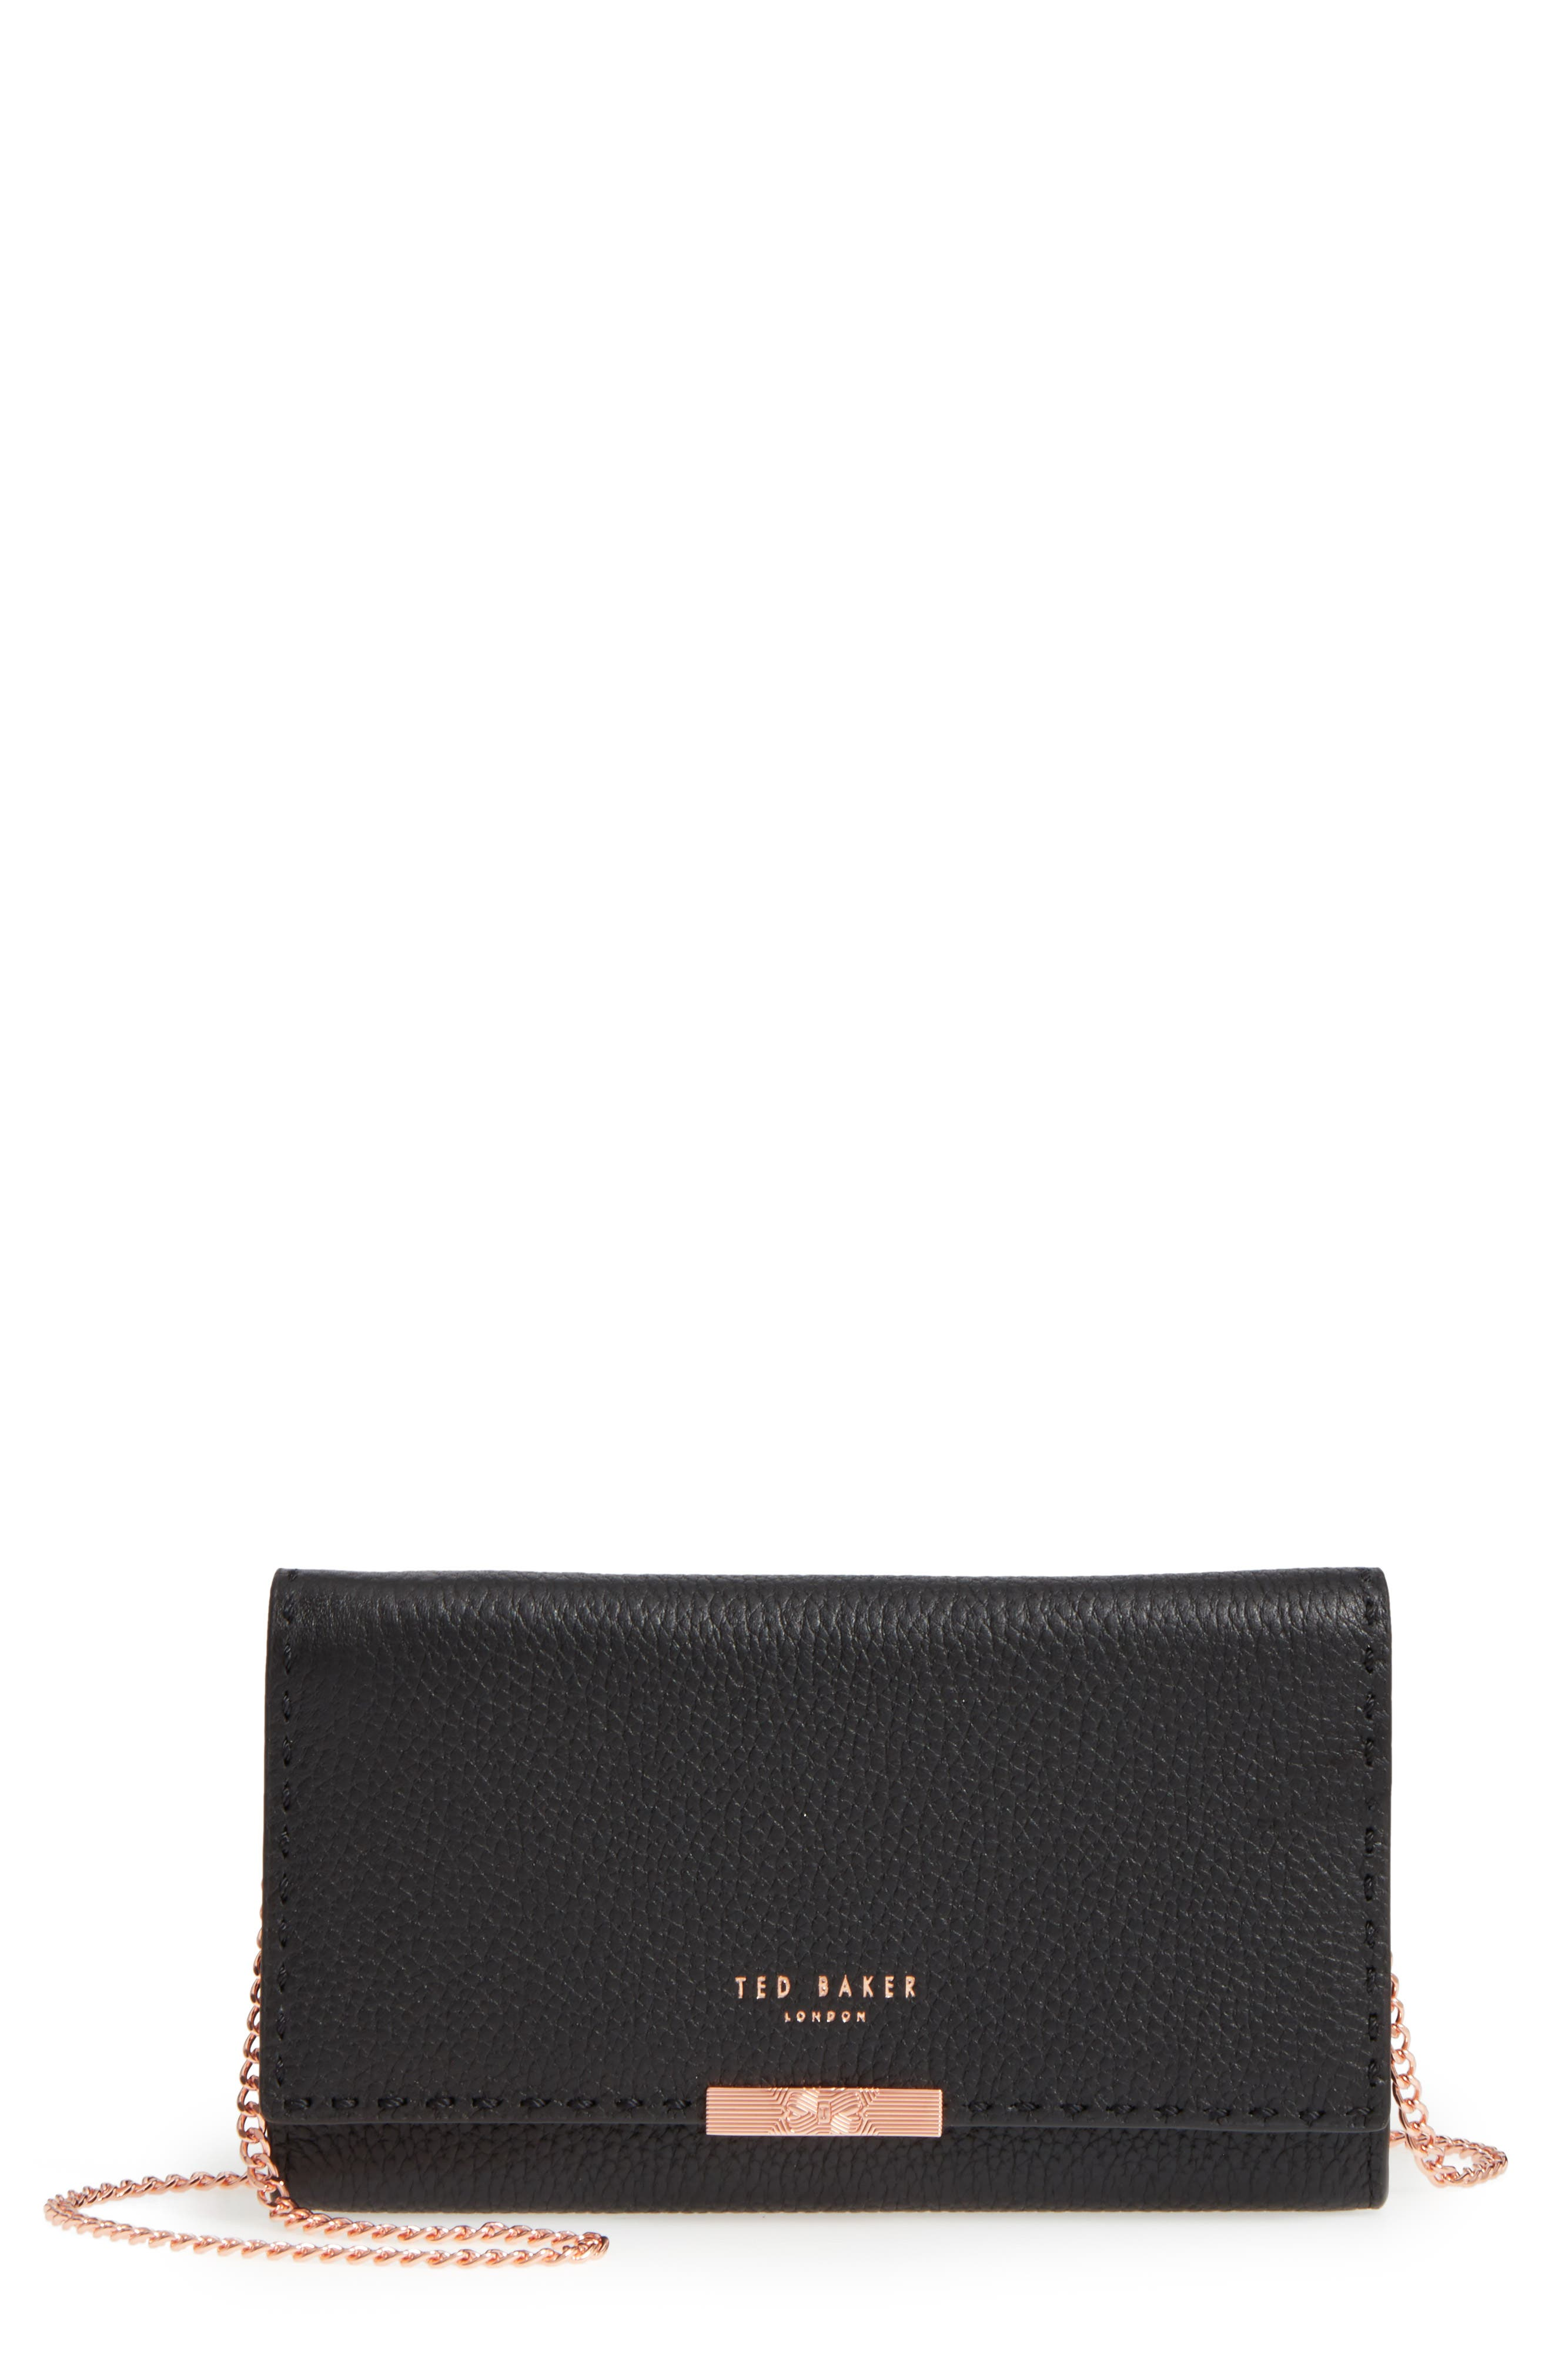 Ted Baker London Janet Leather Crossbody Matinée Wallet on a Chain